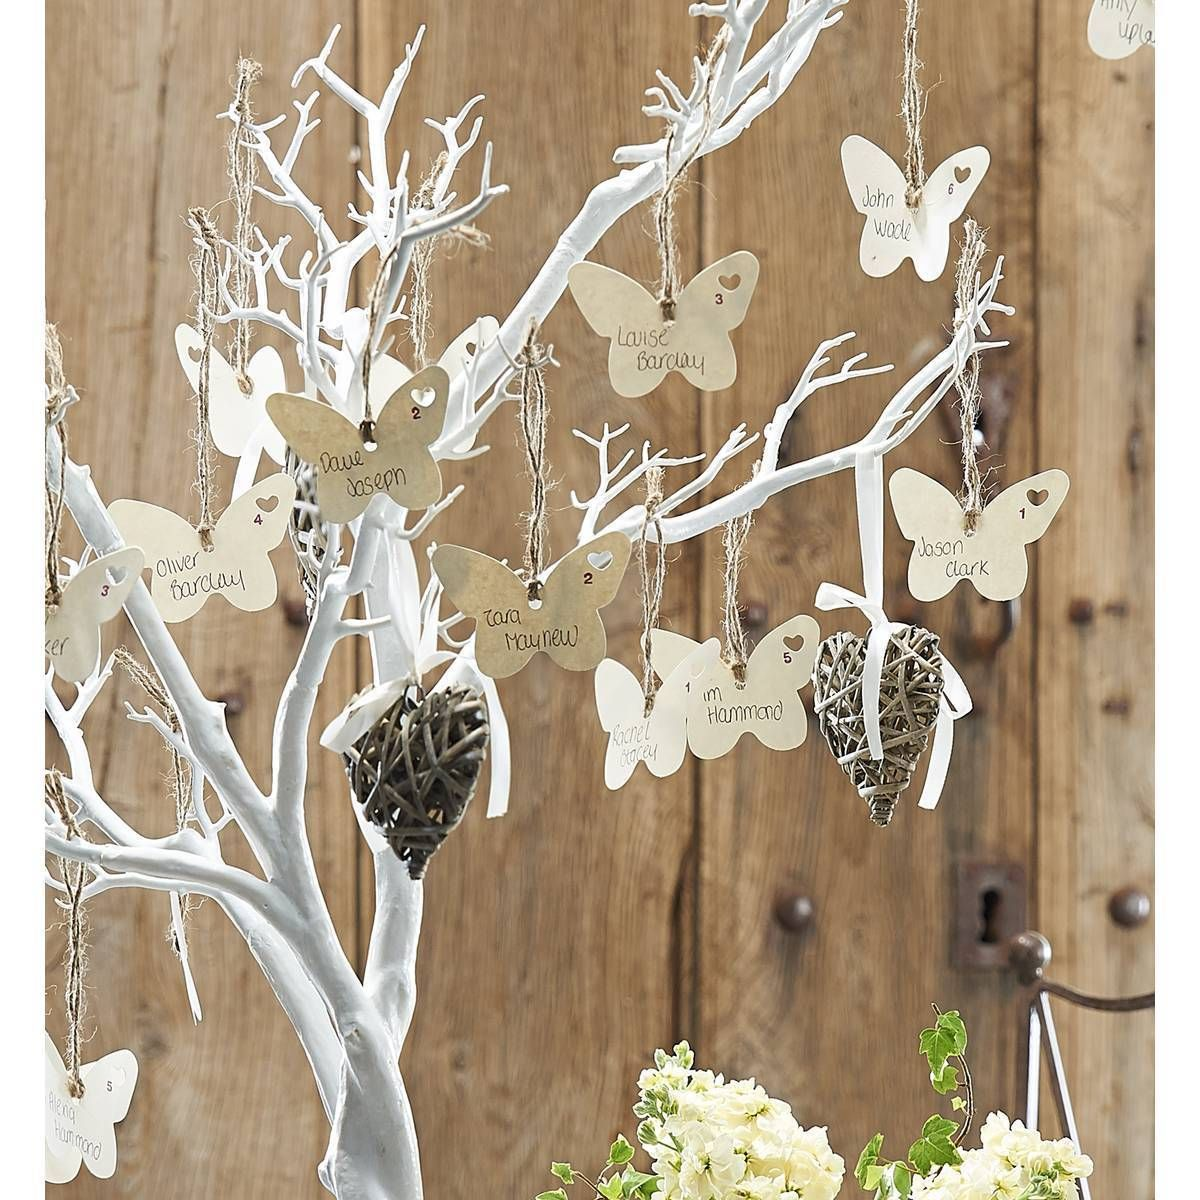 Wooden Wishing Tree Guest Book Alternative Wedding Birthday Party Stuff Wedding Tree Guest Book Wooden Wedding Guest Book Wishing Tree Wedding